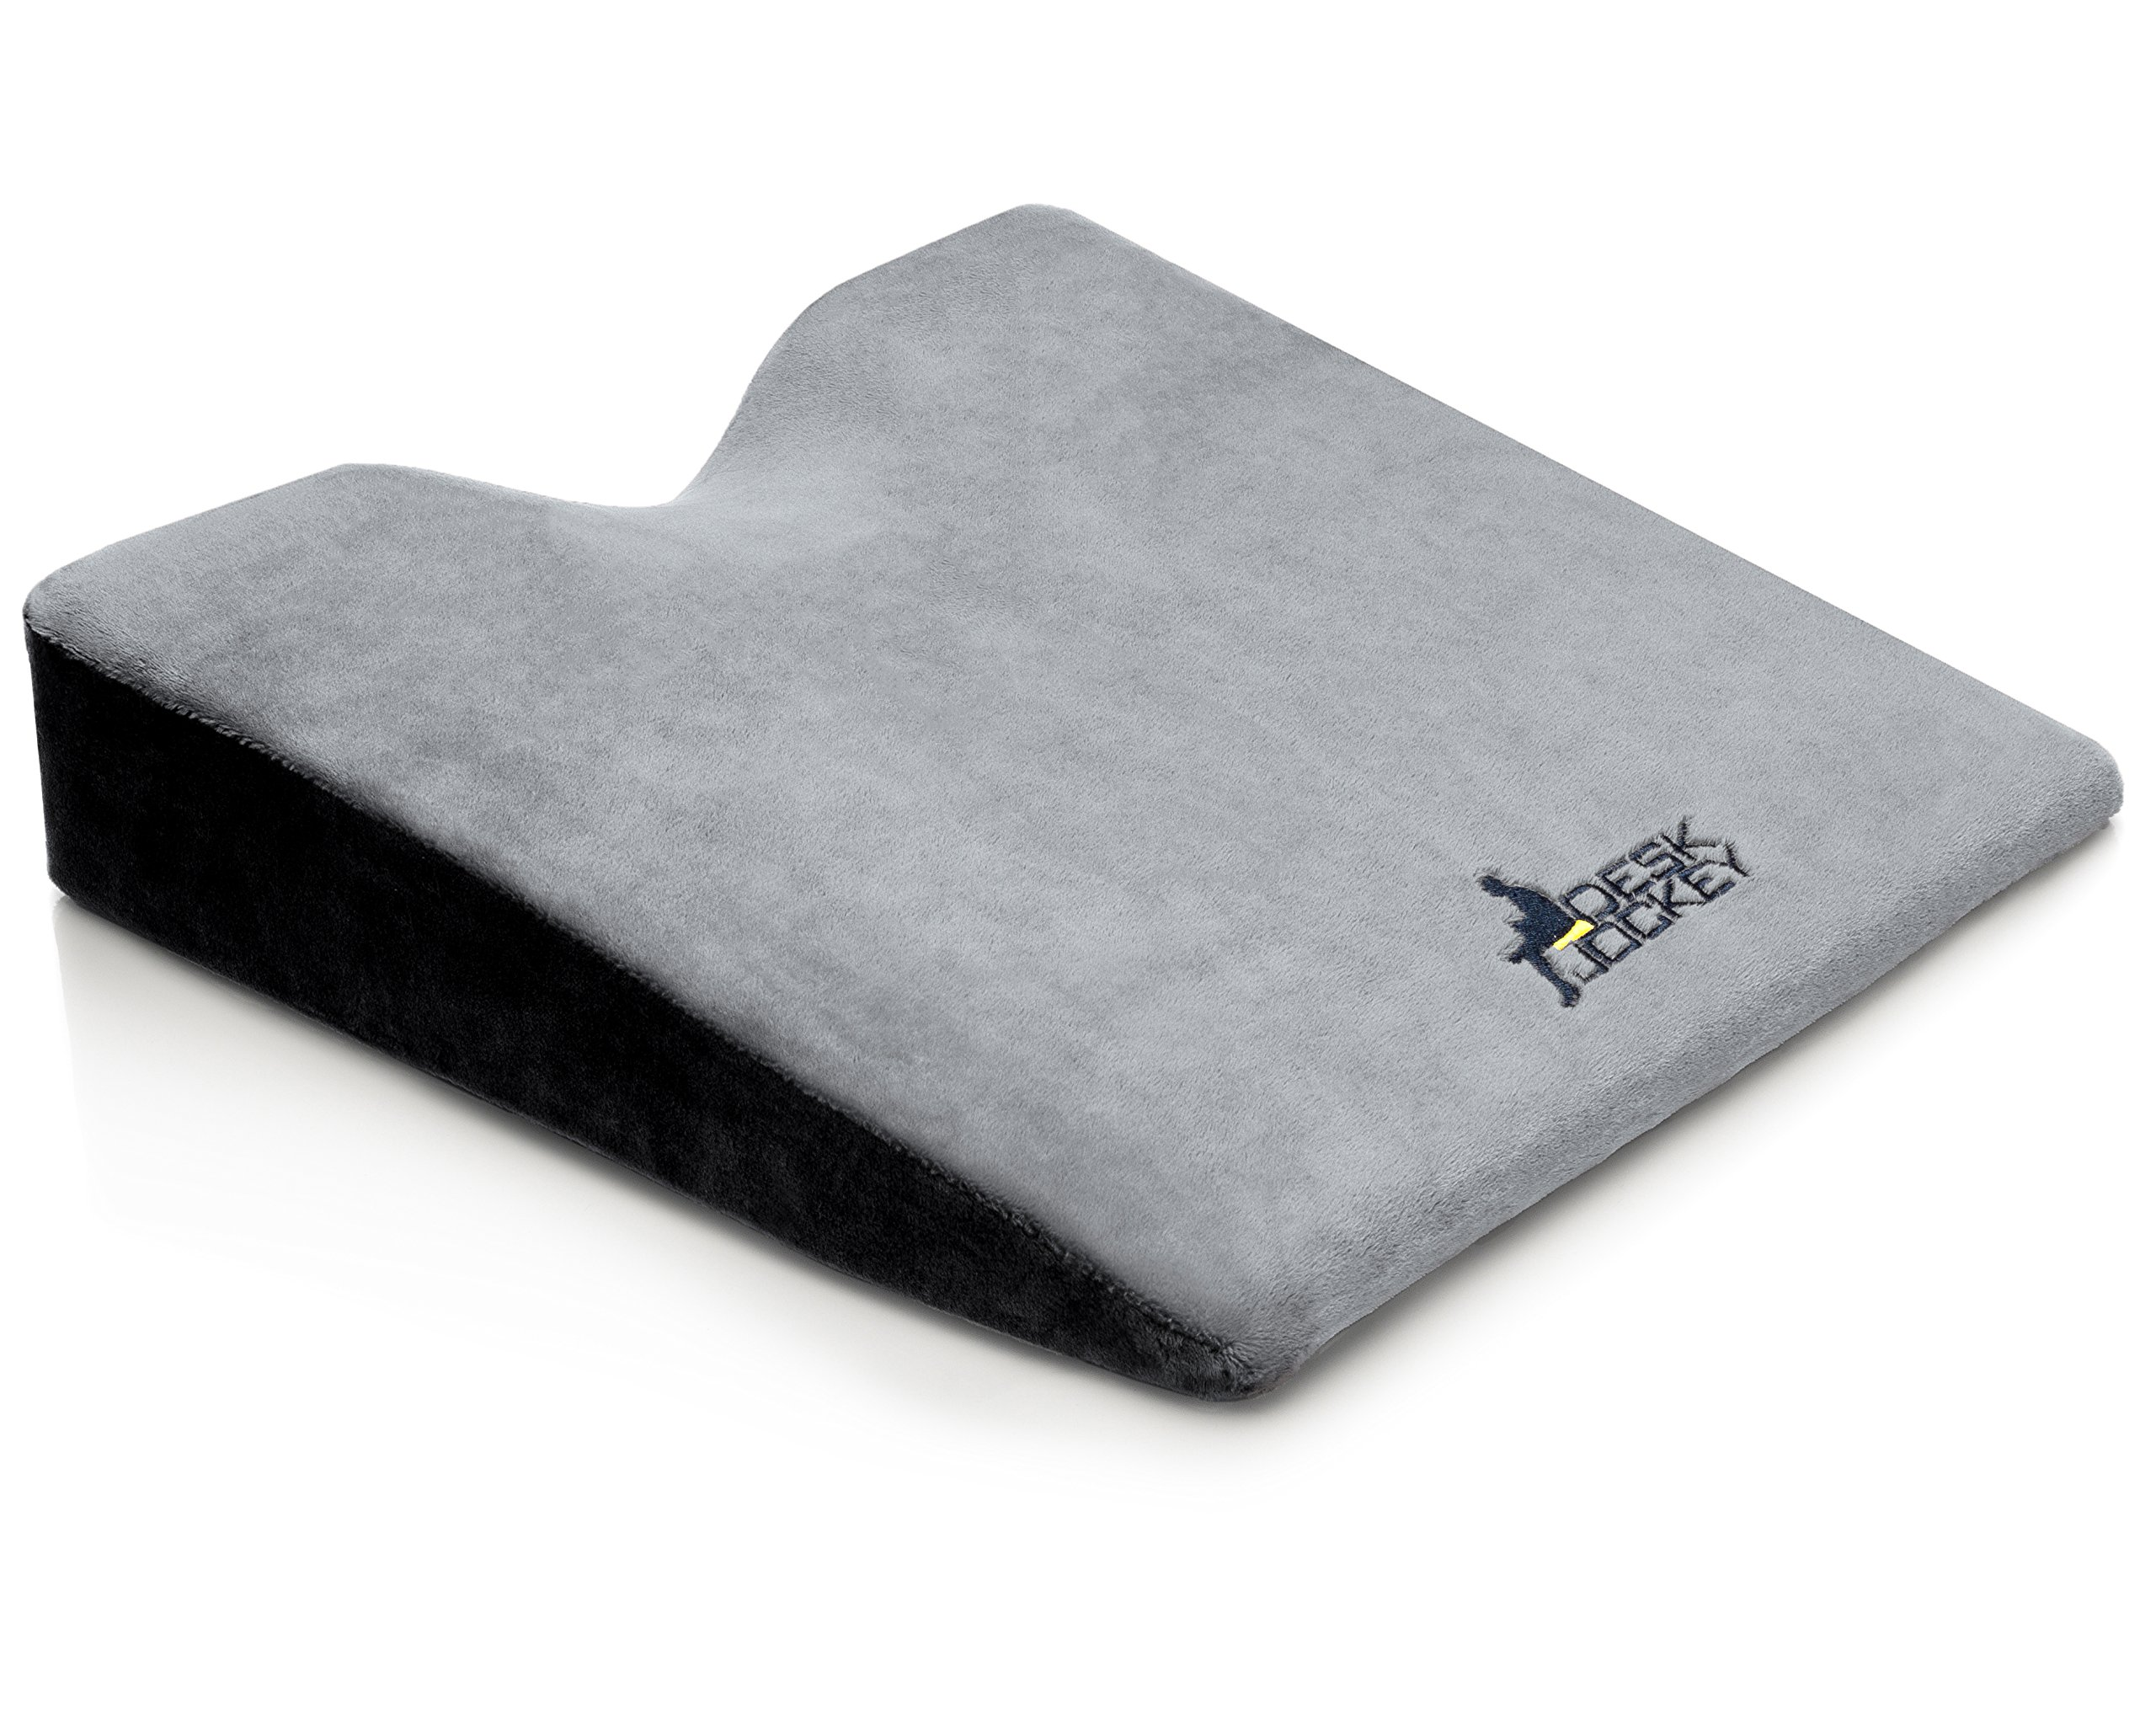 Car Seat Cushion - Premium Therapeutic Grade Car Wedge Cushion To Elevate Height And Comfort While Driving